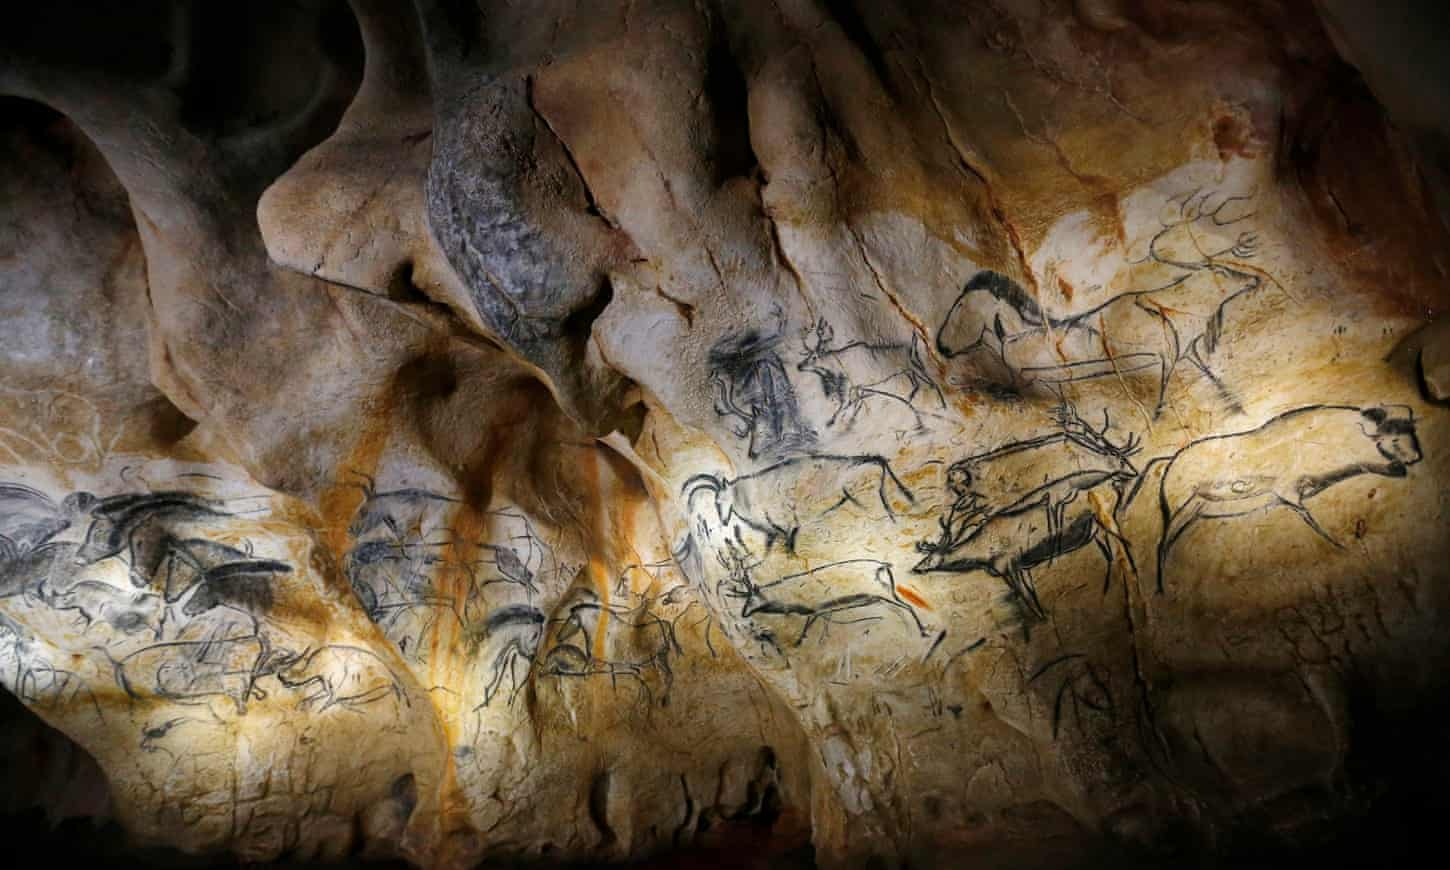 Prehistoric Ardèche cave art brought to life in €55m replica